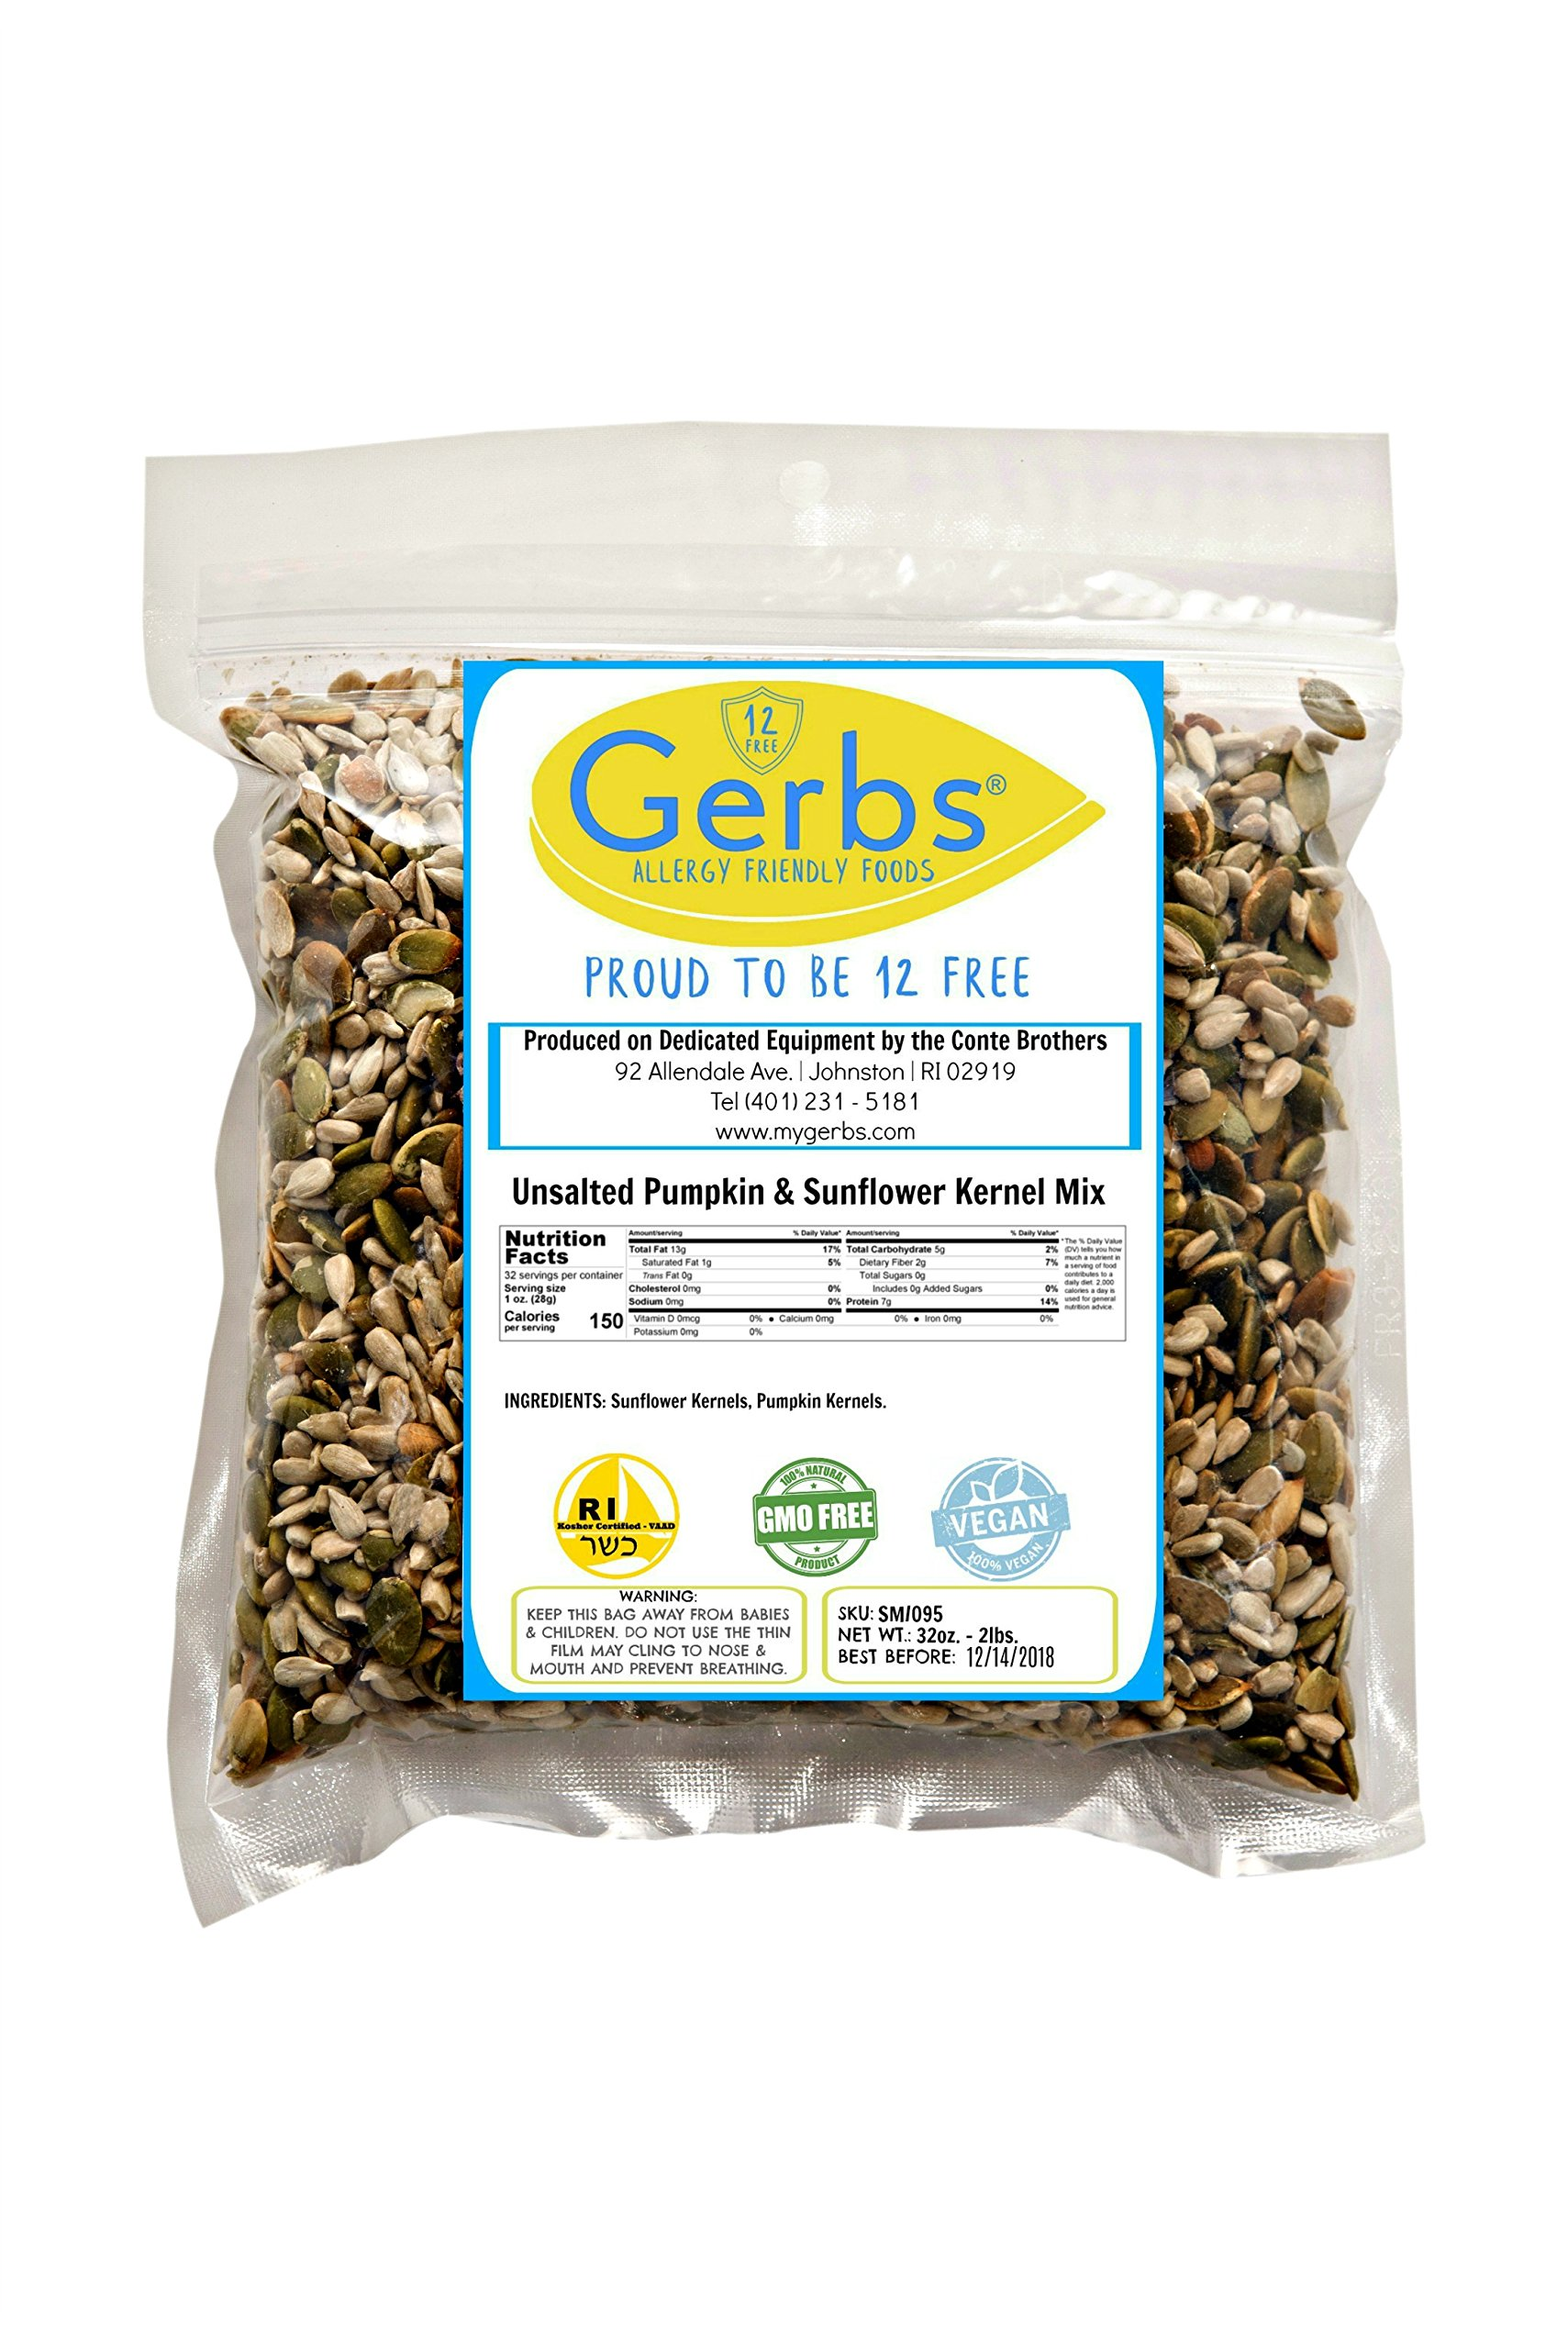 Unsalted Pumpkin & Sunflower Seed Mix, 2 LBS By Gerbs - Top 12 Food Allergy Free & NON GMO - Vegan & Kosher - Premium Dry Roasted Seeds Produced in Rhode Island